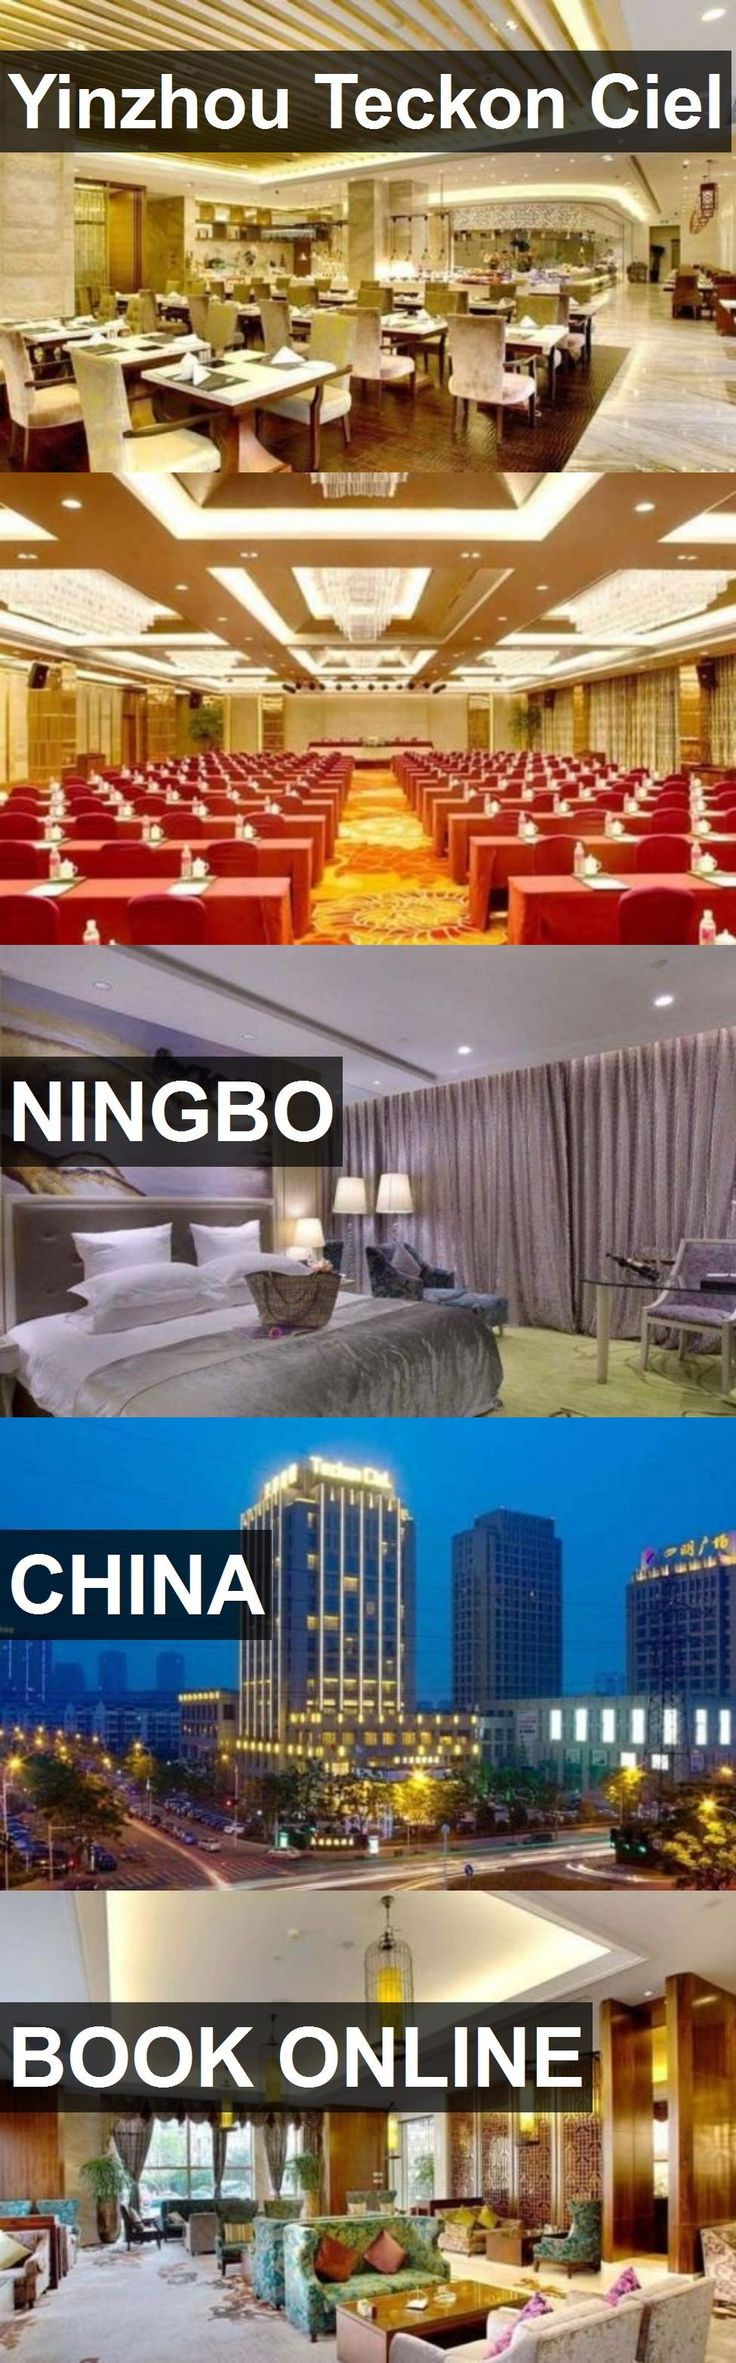 Hotel Yinzhou Teckon Ciel in Ningbo, China. For more information, photos, reviews and best prices please follow the link. #China #Ningbo #travel #vacation #hotel